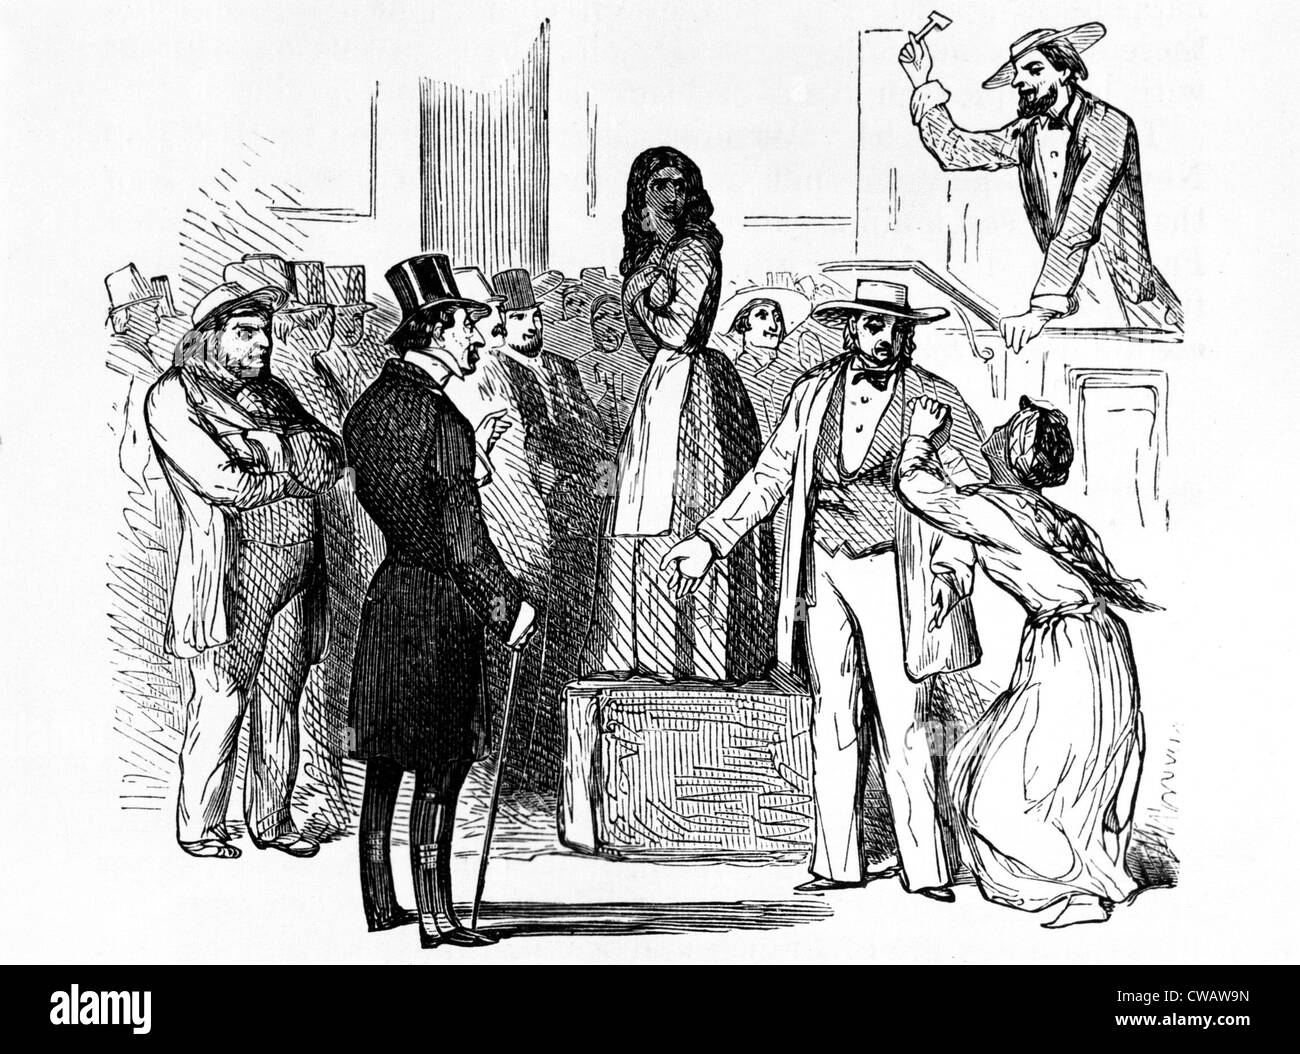 antebellum slavery was primarily economic in Facts, information and articles about the antebellum period, before the civil war antebellum period summary: the antebellum period in american history is generally considered to be the period before the civil war and after the war of 1812, although some historians expand it to all the years from the adoption of the constitution in 1789.